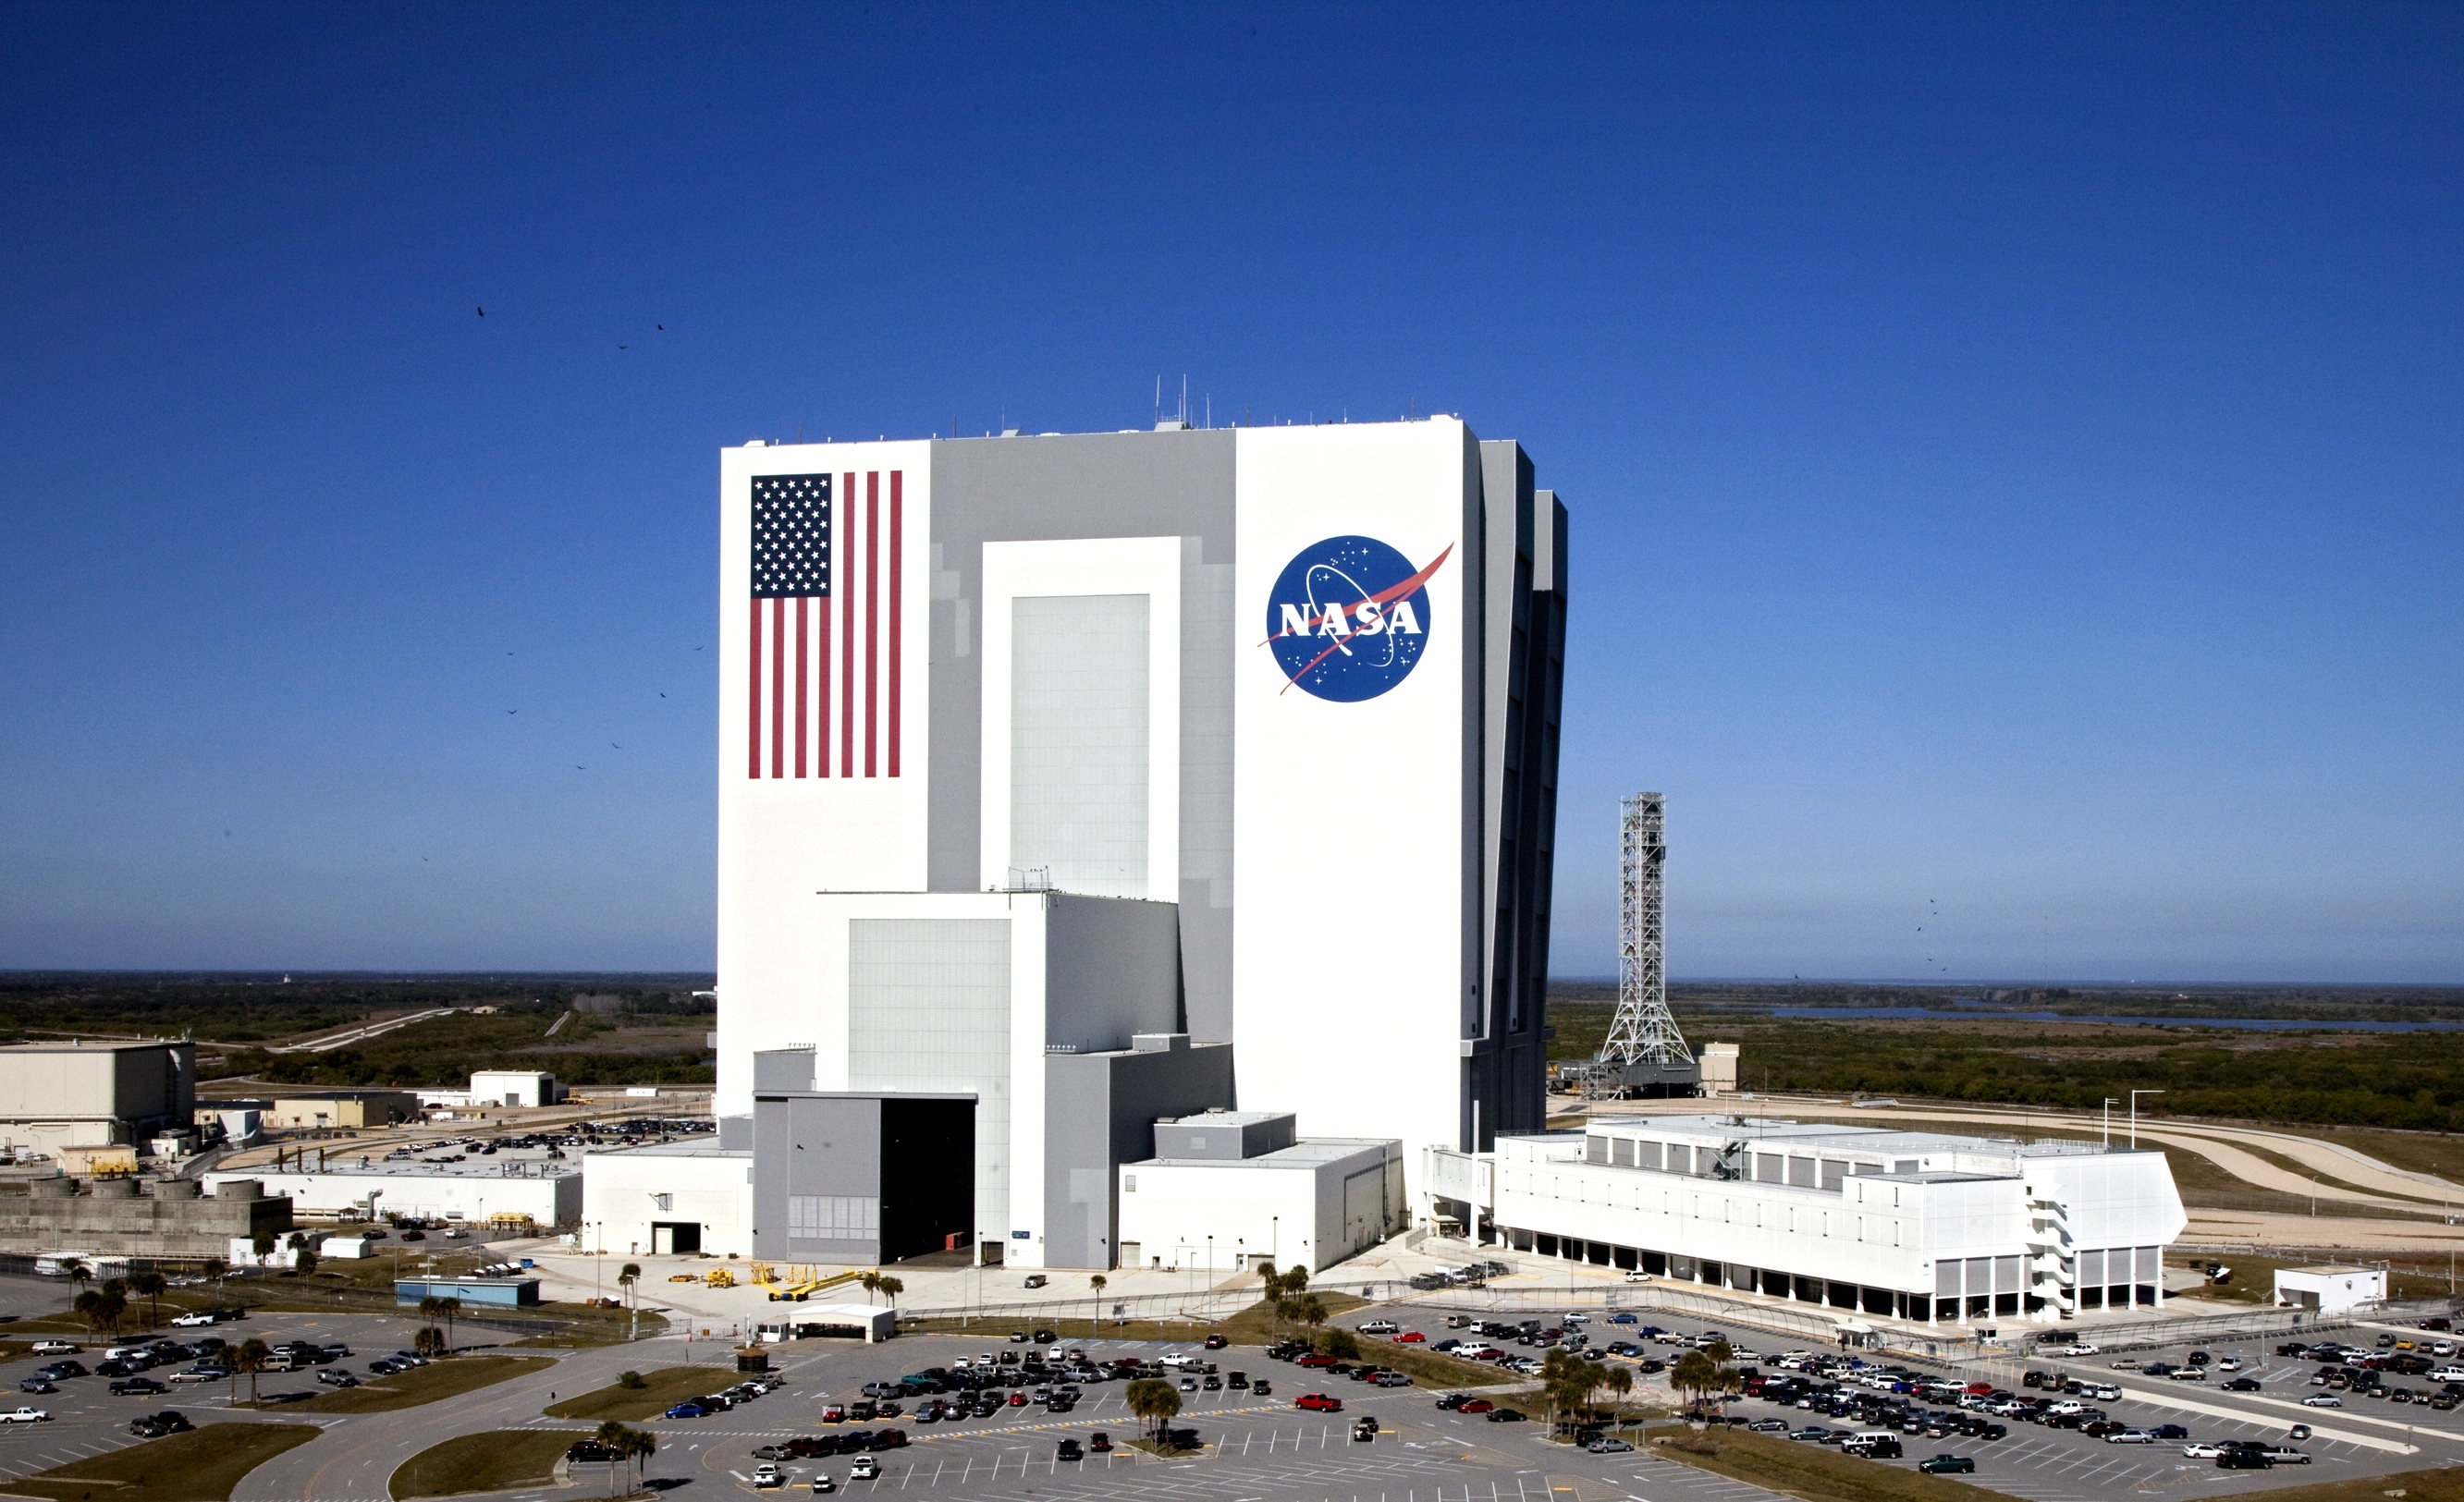 nasa_kennedy_space_centre_things_to_do_in_usa